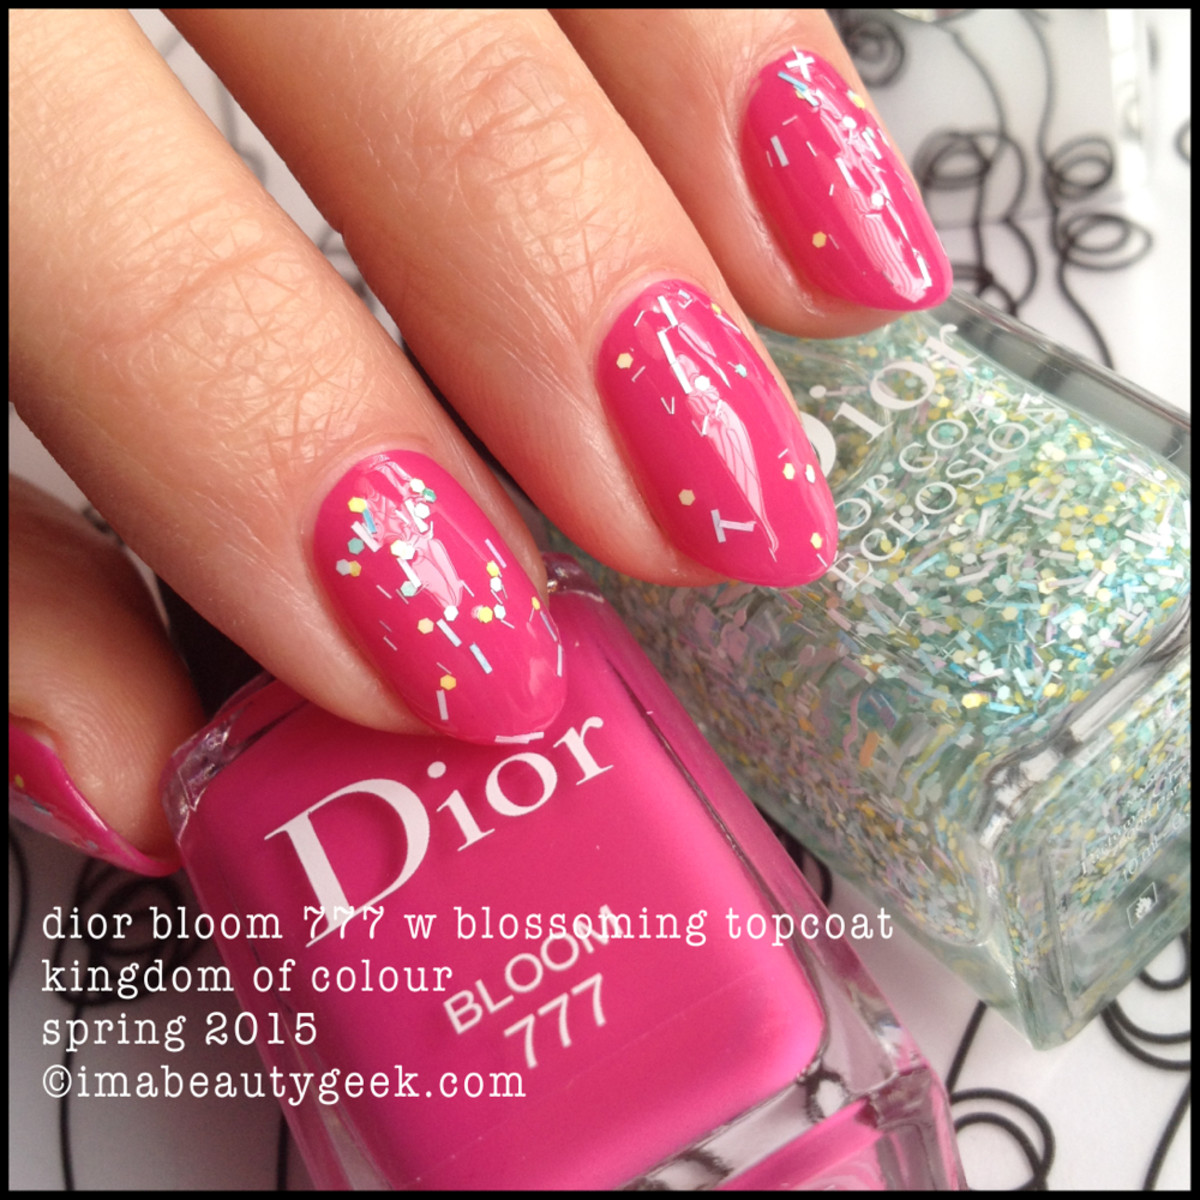 Dior Bloom 777 w Dior Blossoming TopCoat Spring 2015